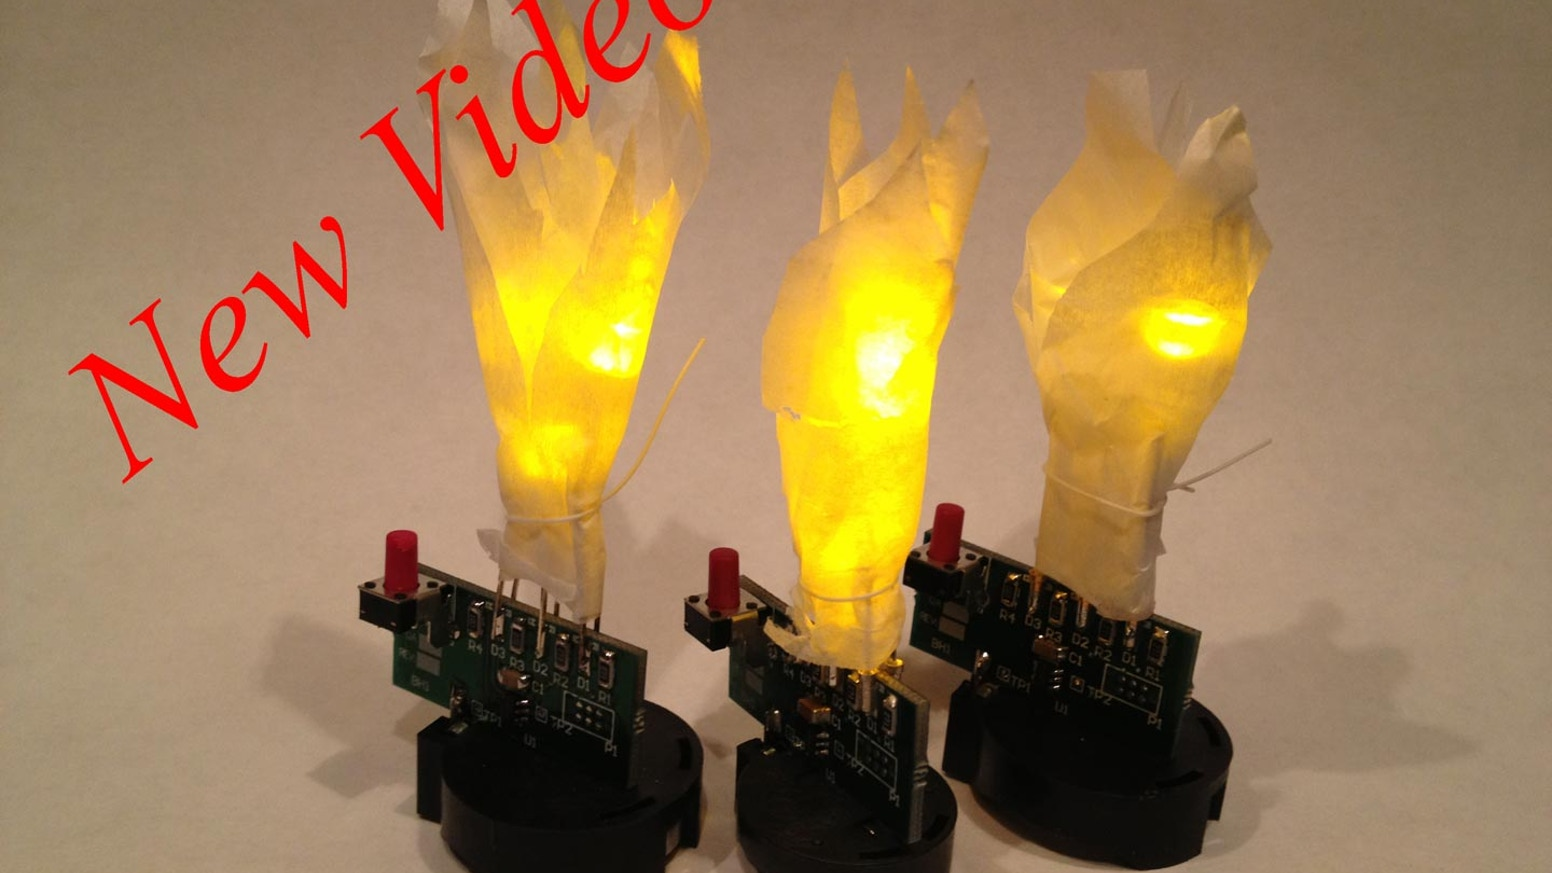 Qflame Kit By David Christianson Kickstarter Flickering Candle Flamewax Led Candleled Electronic Circuit Build This Simple Simulates A Flame Without The Worry 3 Leds For An Animated Timed Modes Auto Off